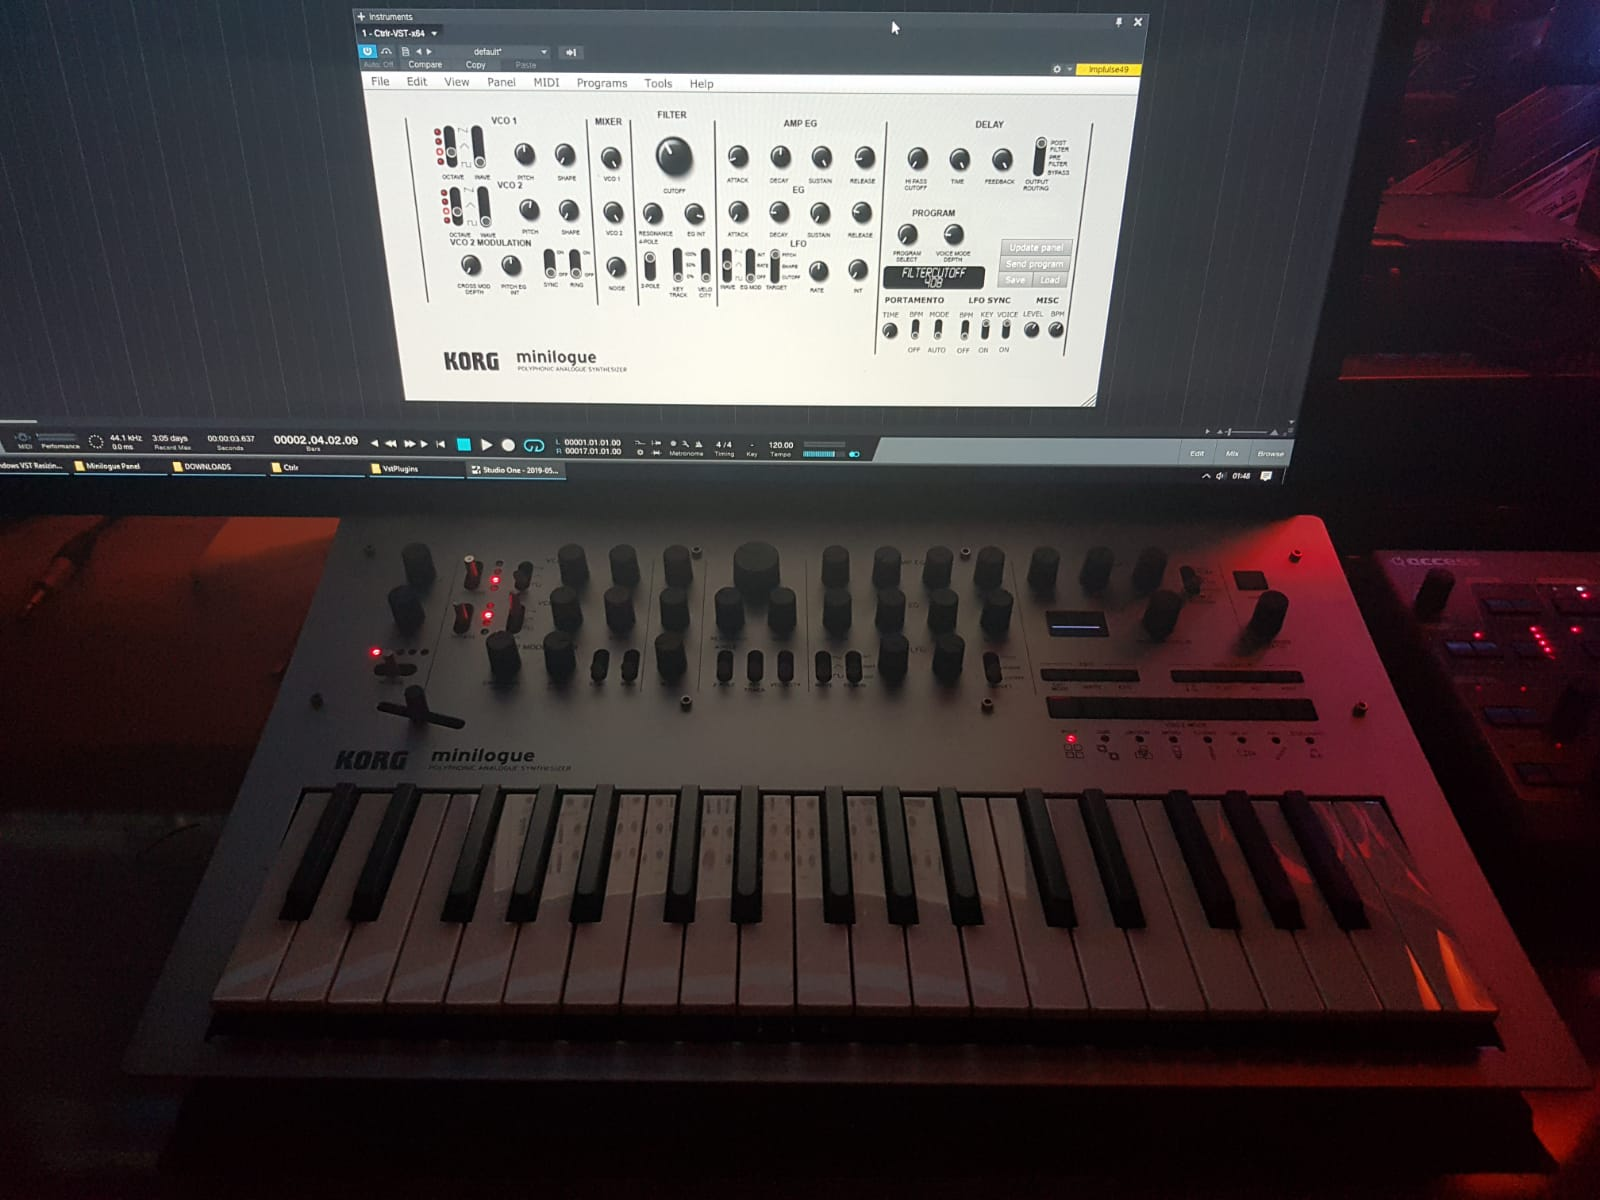 Korg Minilogue Editor Vst and Standalone (Windows&Mac) – Bilal Cetiner